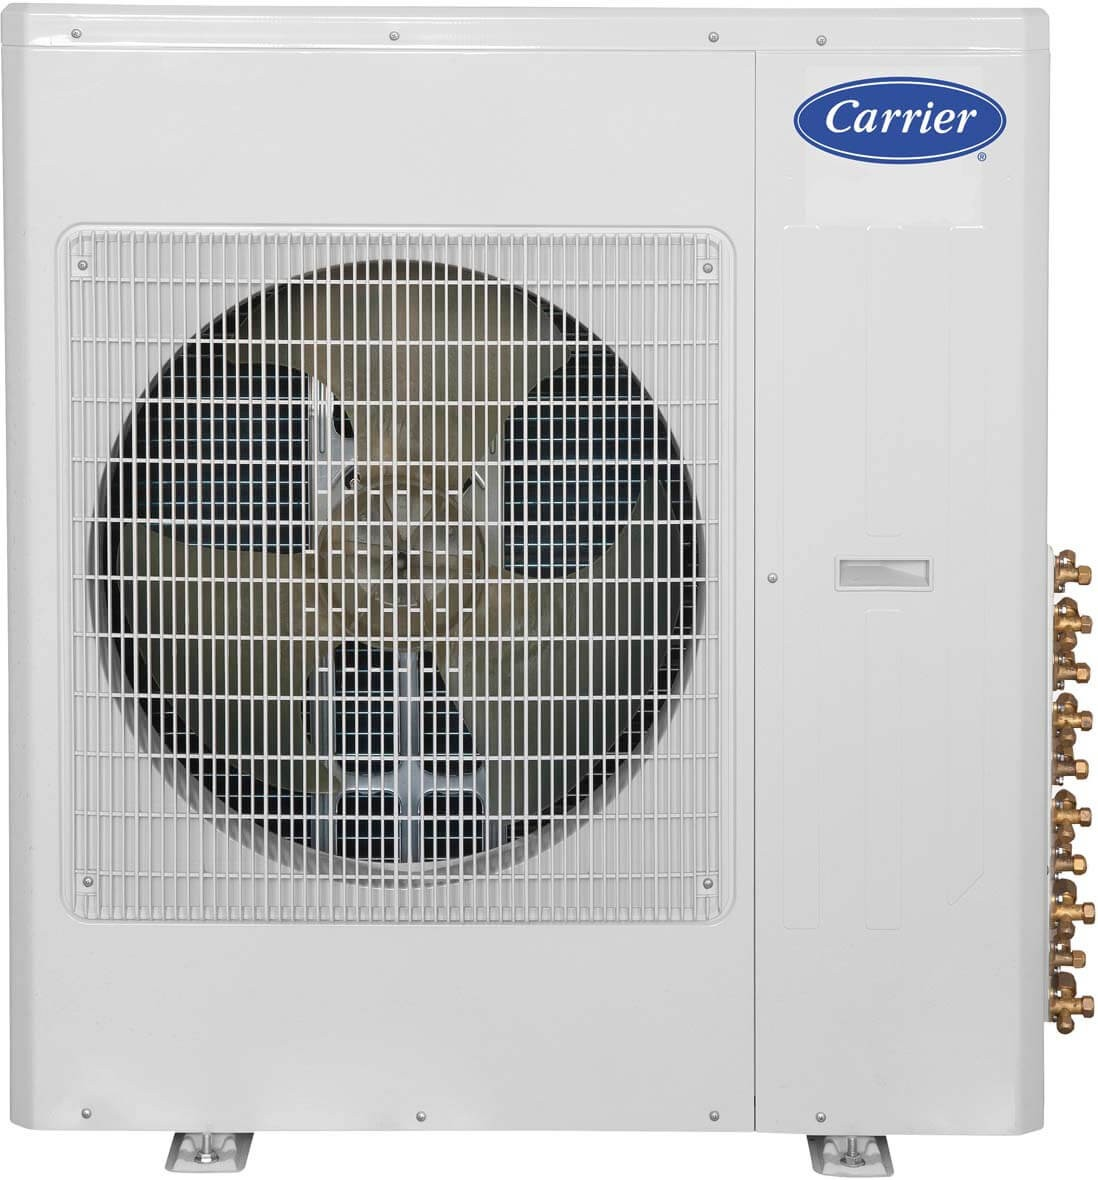 Infinity® Multi-Zone Heat Pump Model: 38GJQ